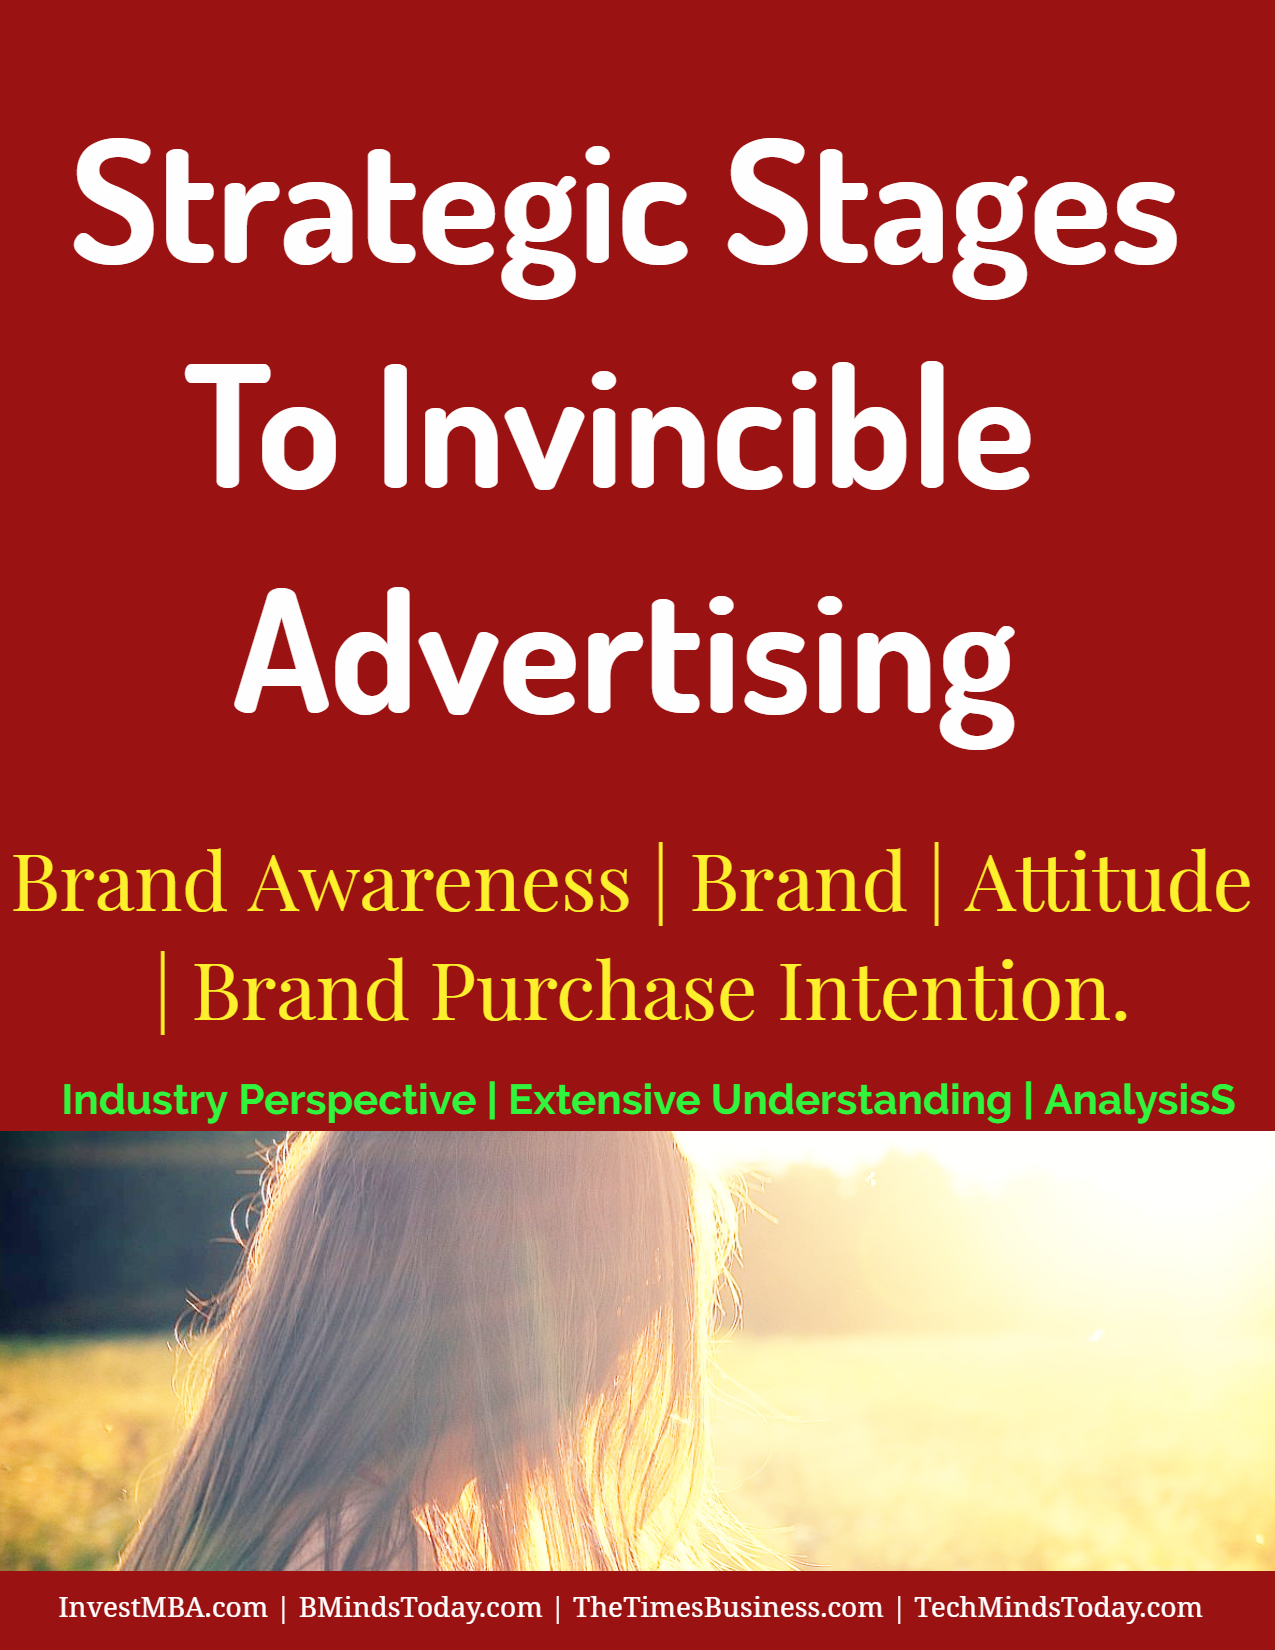 FOUR Strategic Stages to Invincible Advertising | Negotiation | Awareness | Attitude advertising FOUR Strategic Stages to Invincible Advertising | Negotiation |  Awareness | Attitude FOUR Strategic Stages to Invincible Advertising Negotiation Awareness Attitude